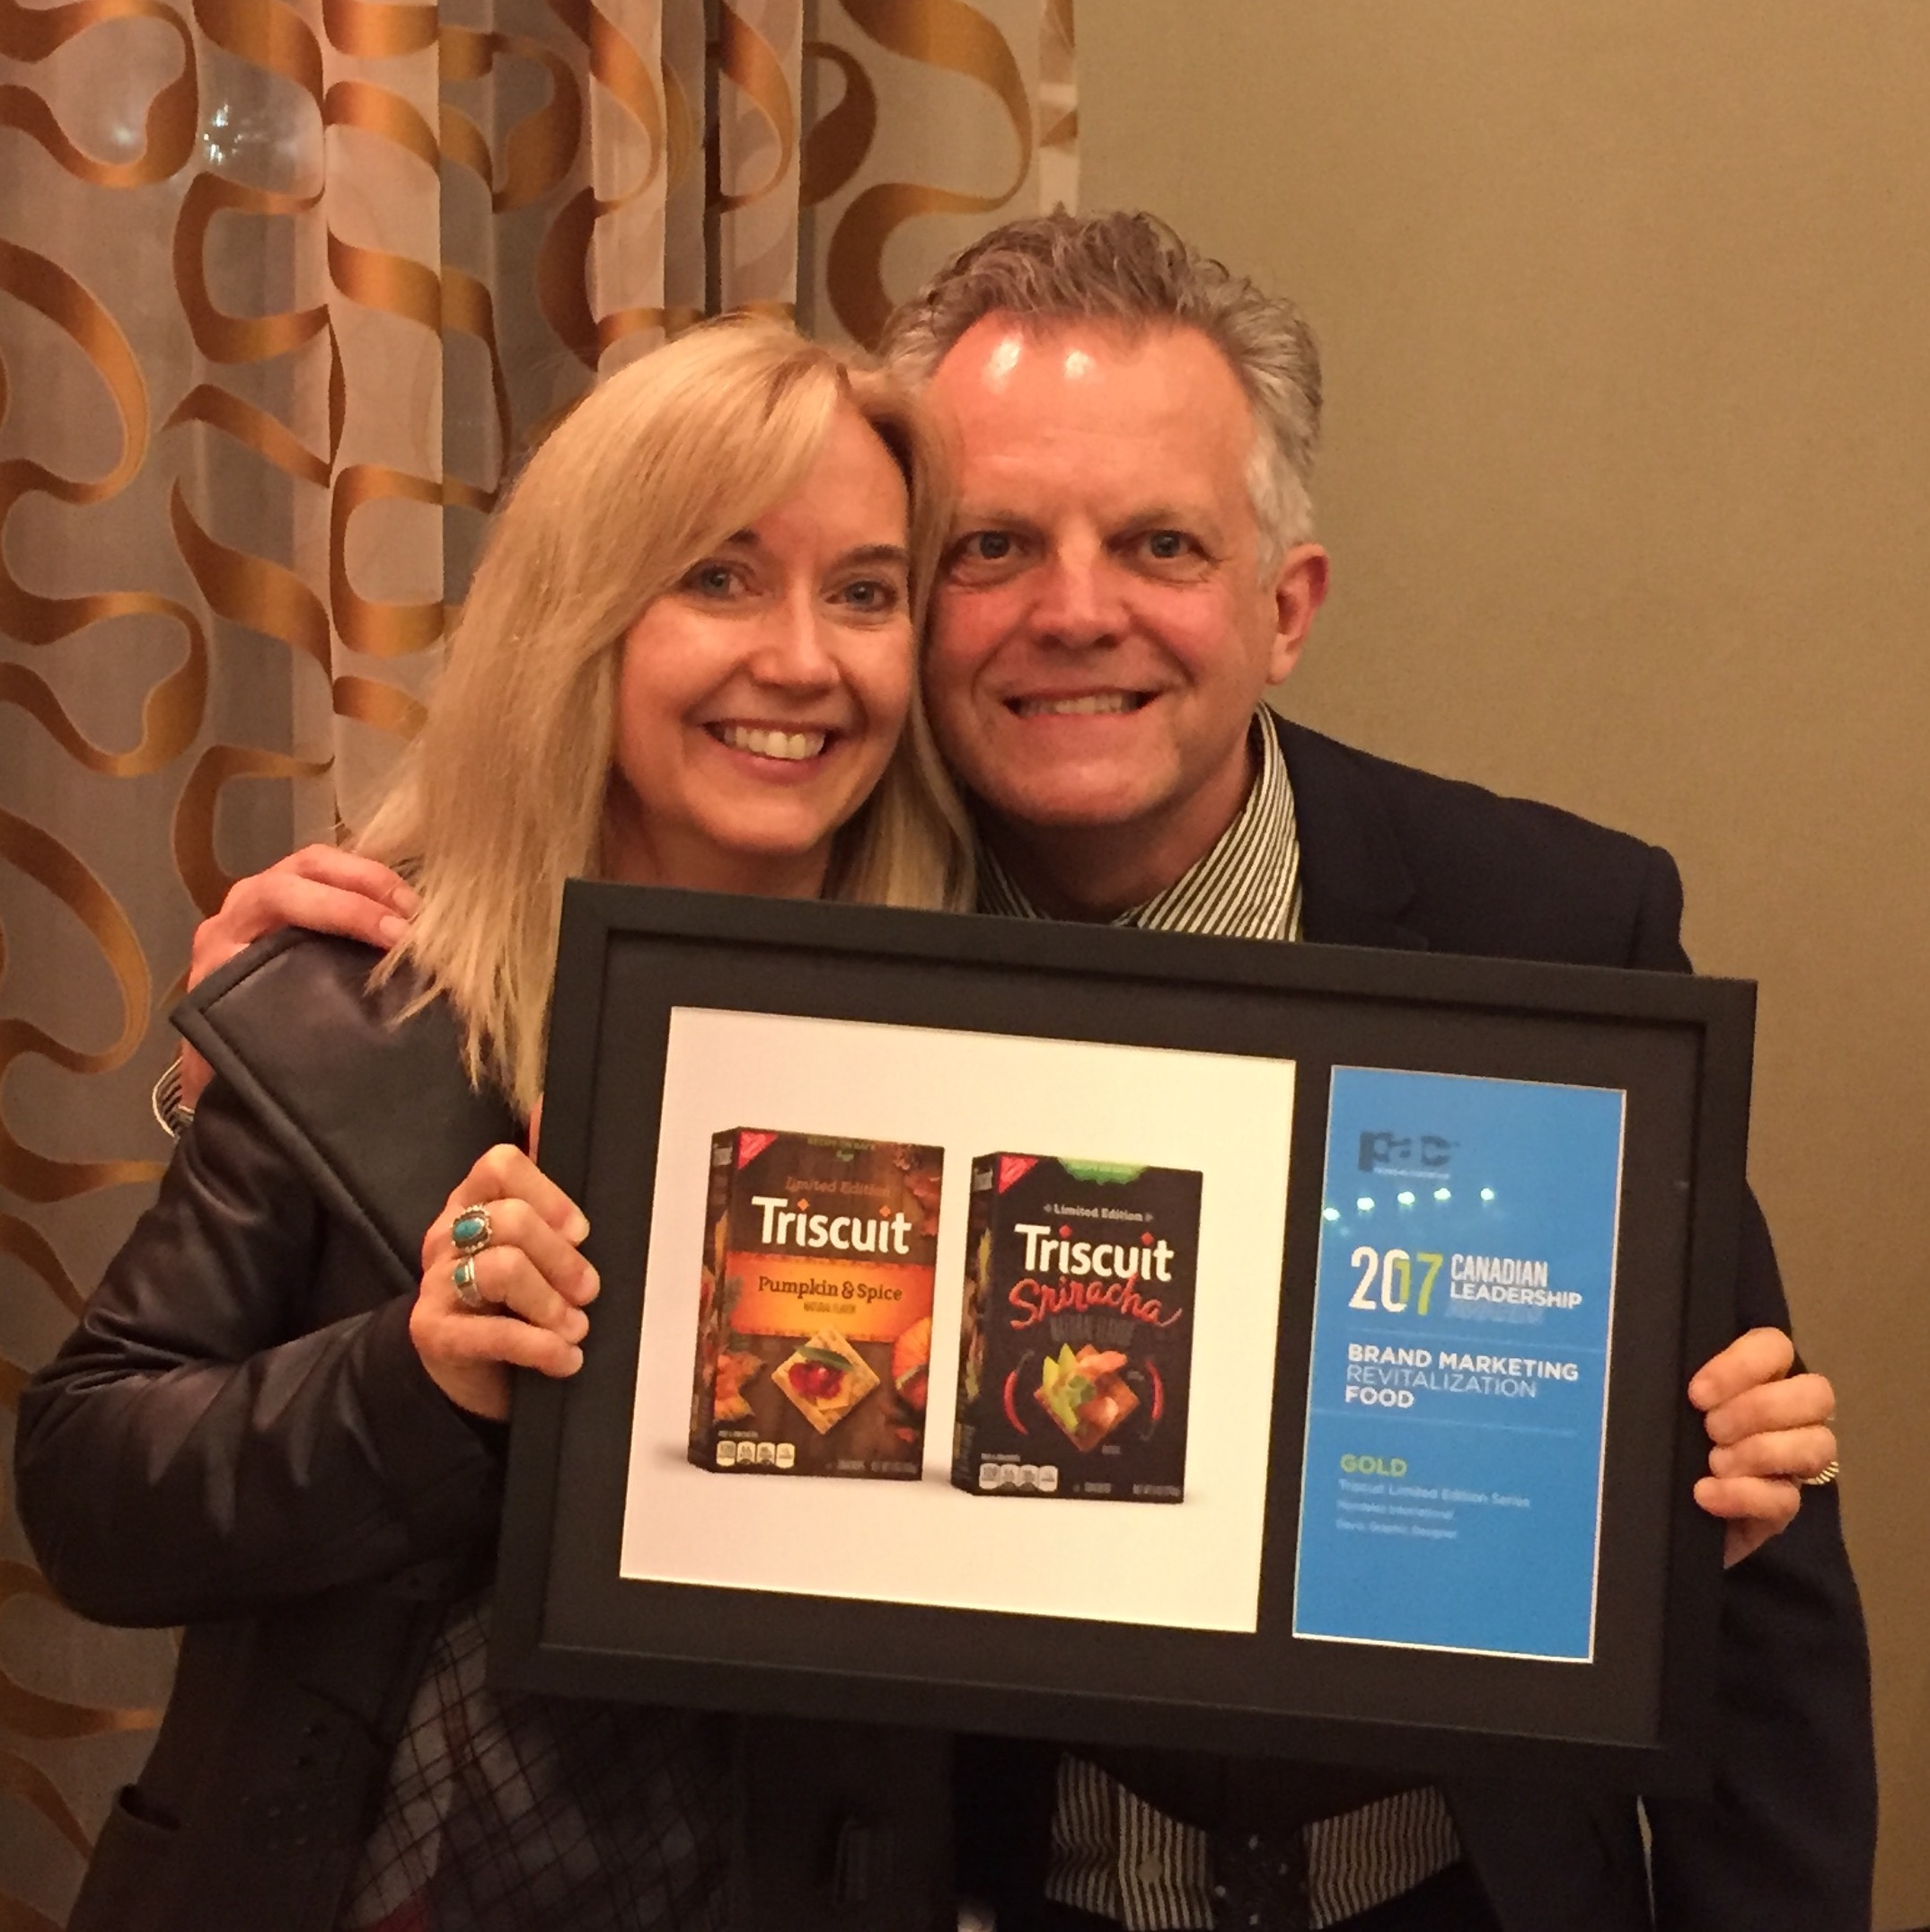 Linda Ranson-Smith, Designer, and Chris Plewes, VP Creative Director, with the award for Triscuit Limited Editions